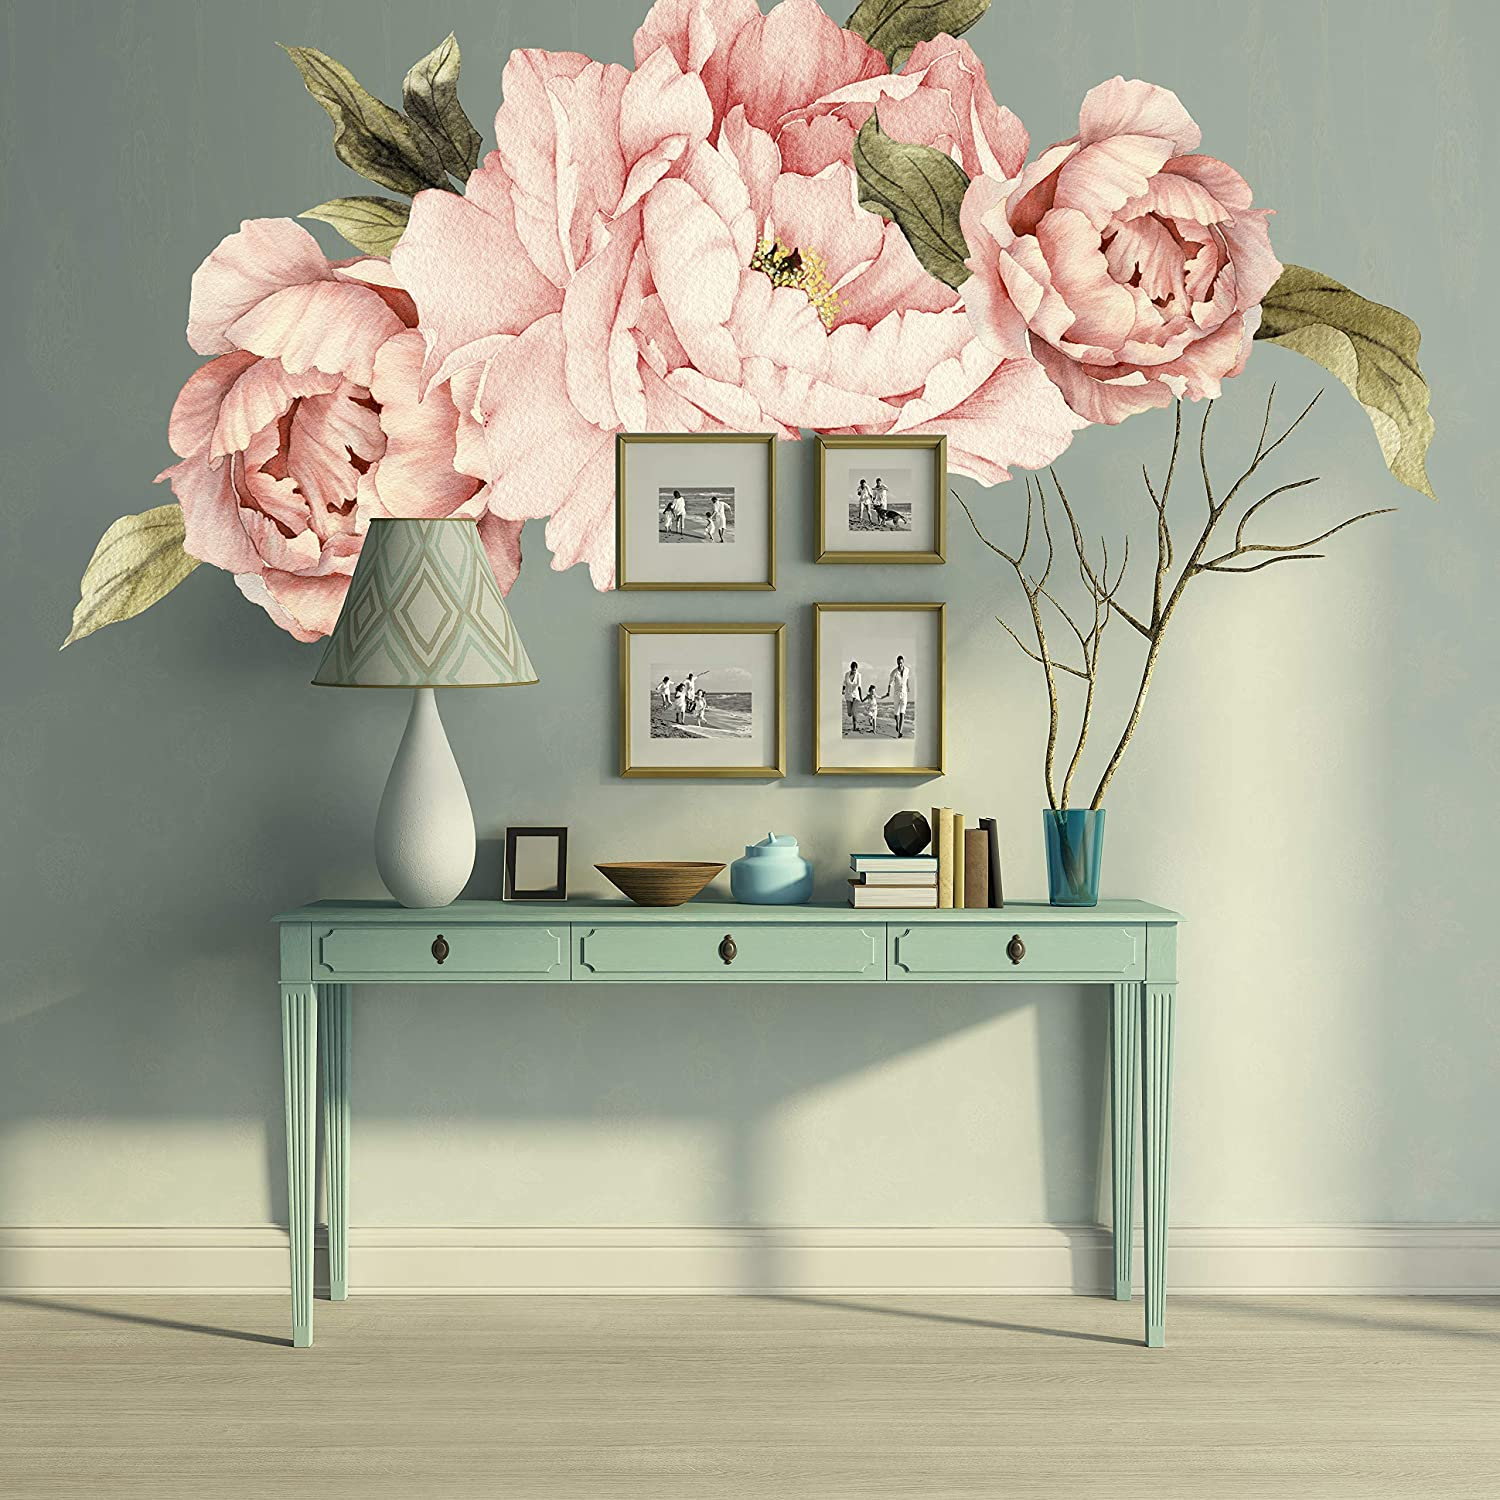 Amazon Com Murwall Pink Peonies Wall Decals Floral Wall Decal